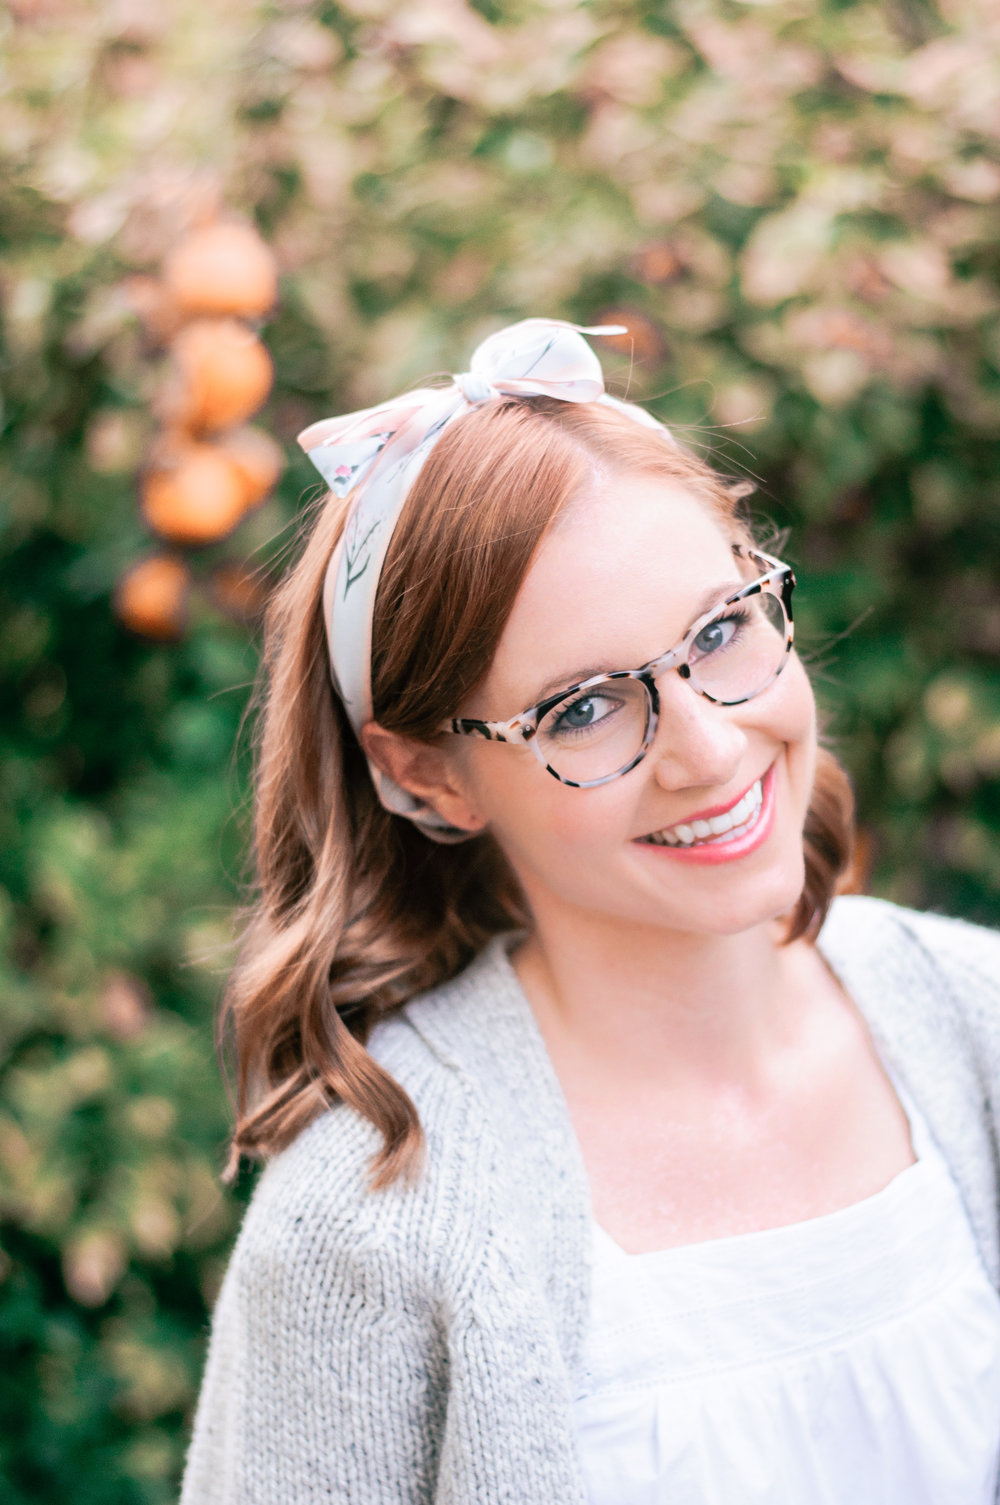 f3cdf4aa167 The 5 Best Places to Shop for Glasses Online - Love and Specs